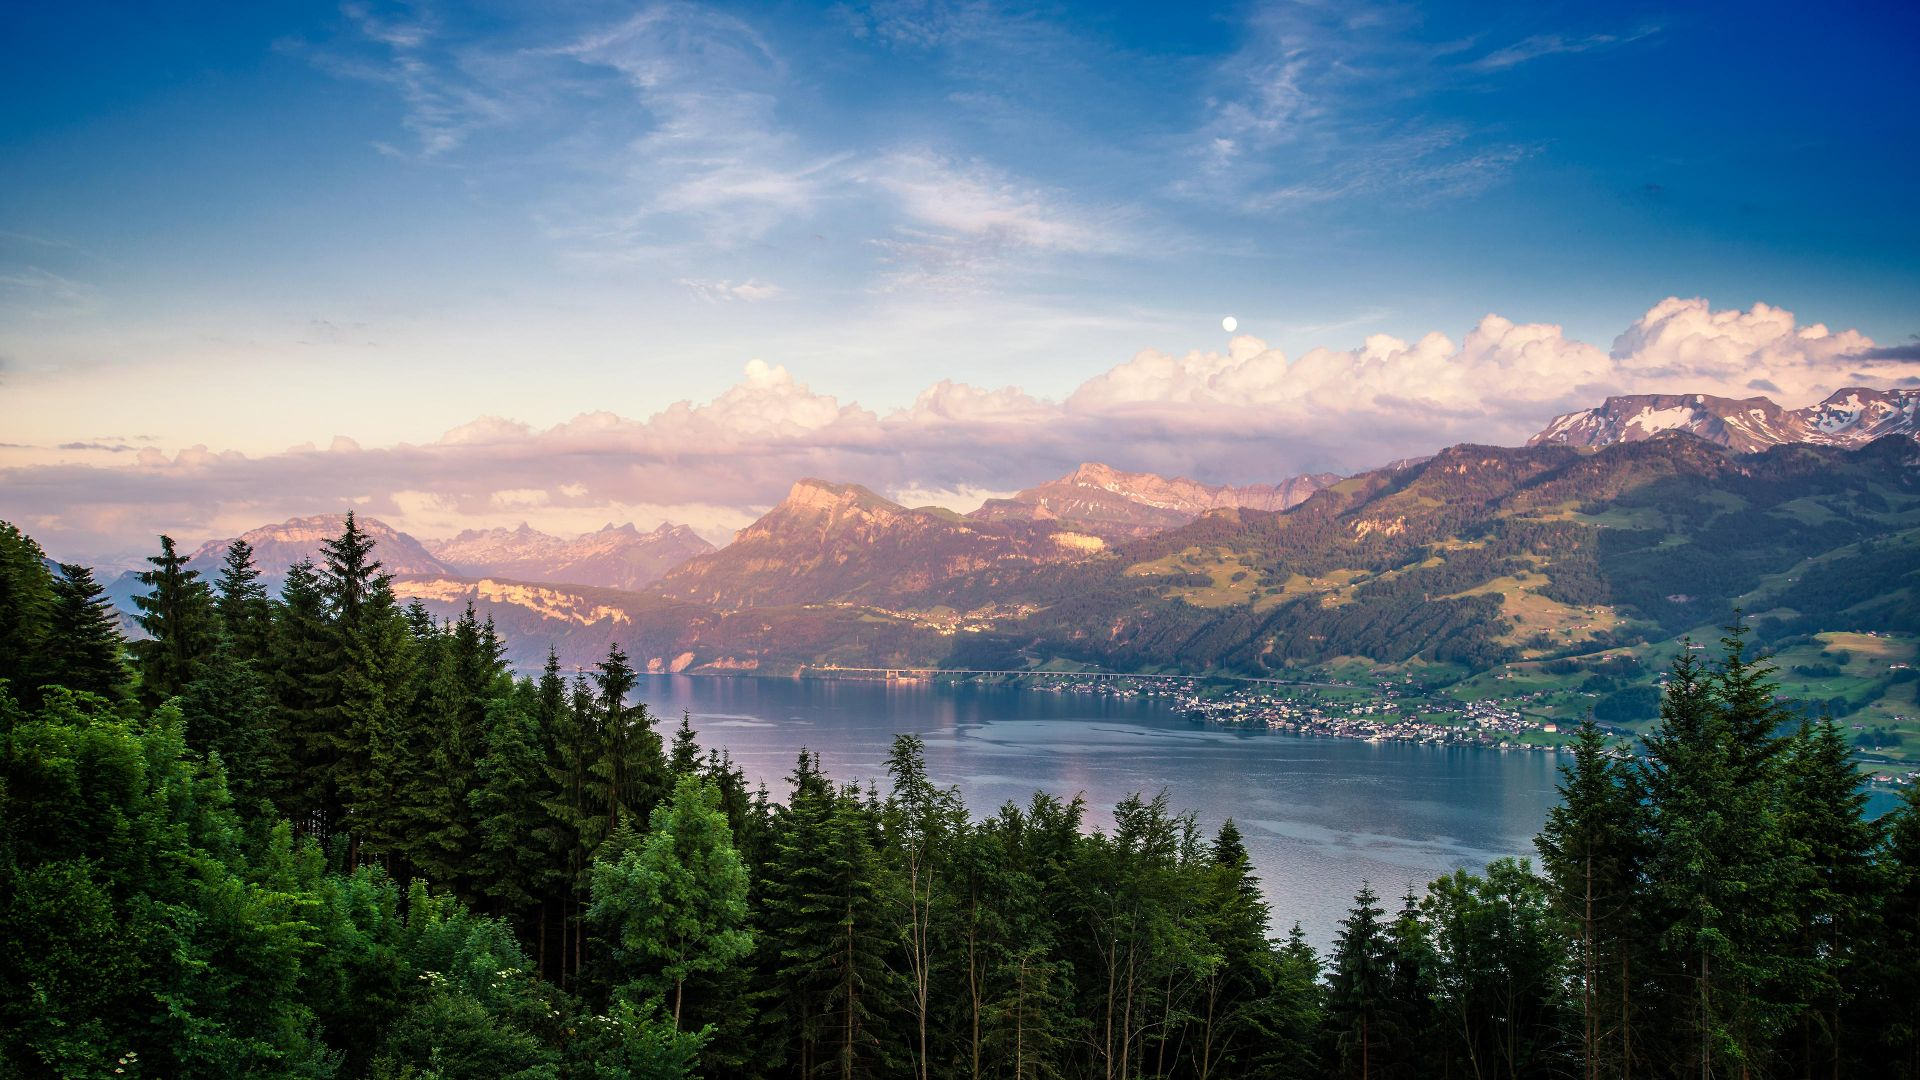 Lake Zurich, forest, sky, mountains, 4k (horizontal)